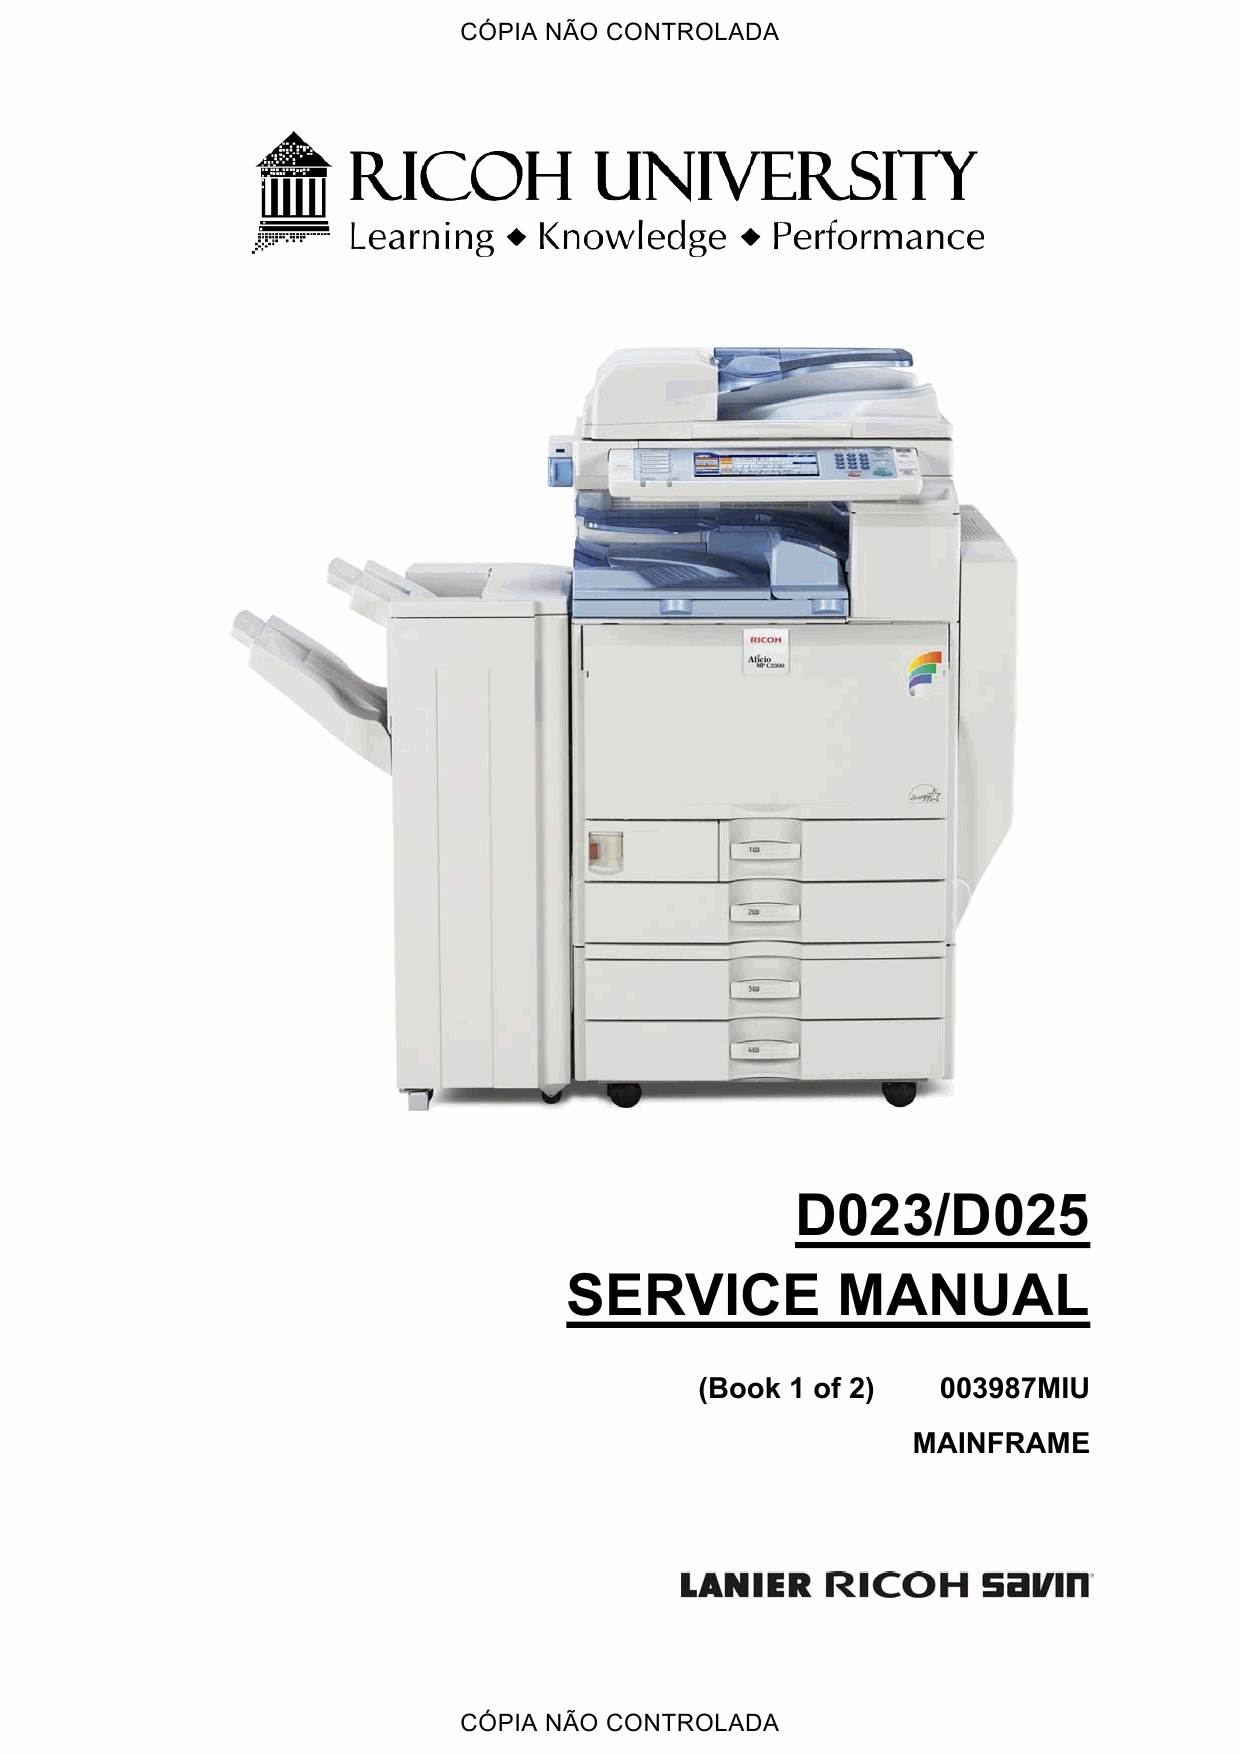 RICOH Aficio MP-C2800 C3300 D023 D025 Service Manual-1